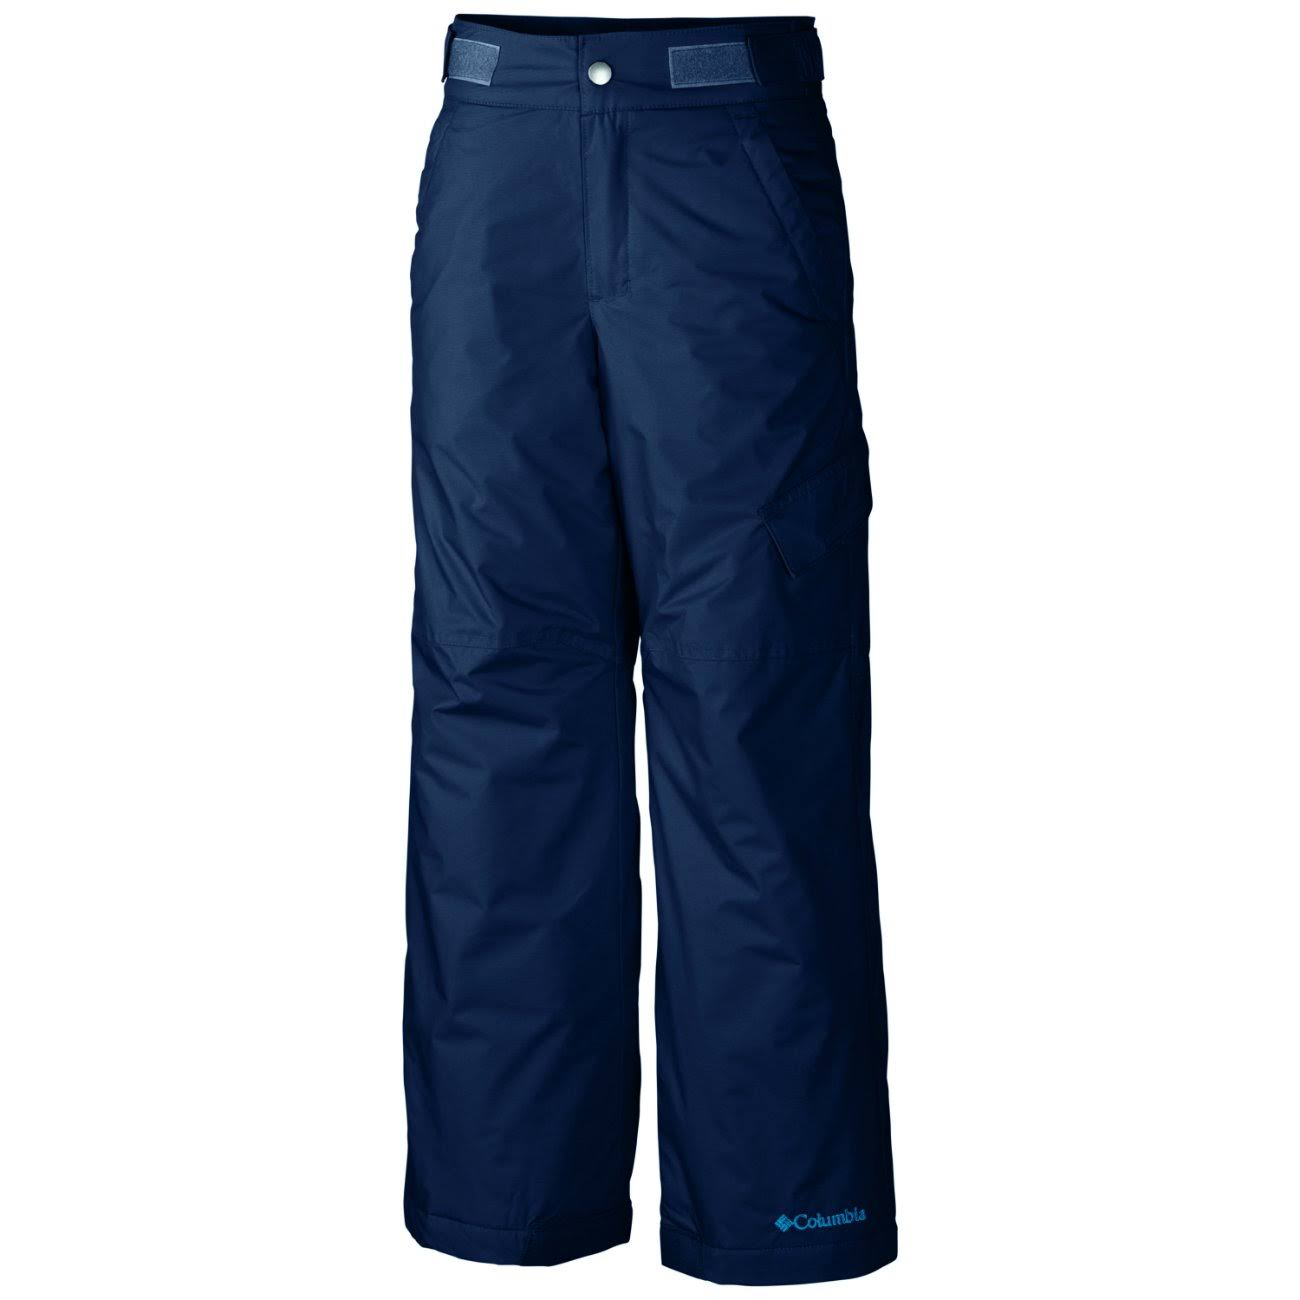 Columbia Boys' Ice Slope II Pants - Navy, Xx-Small